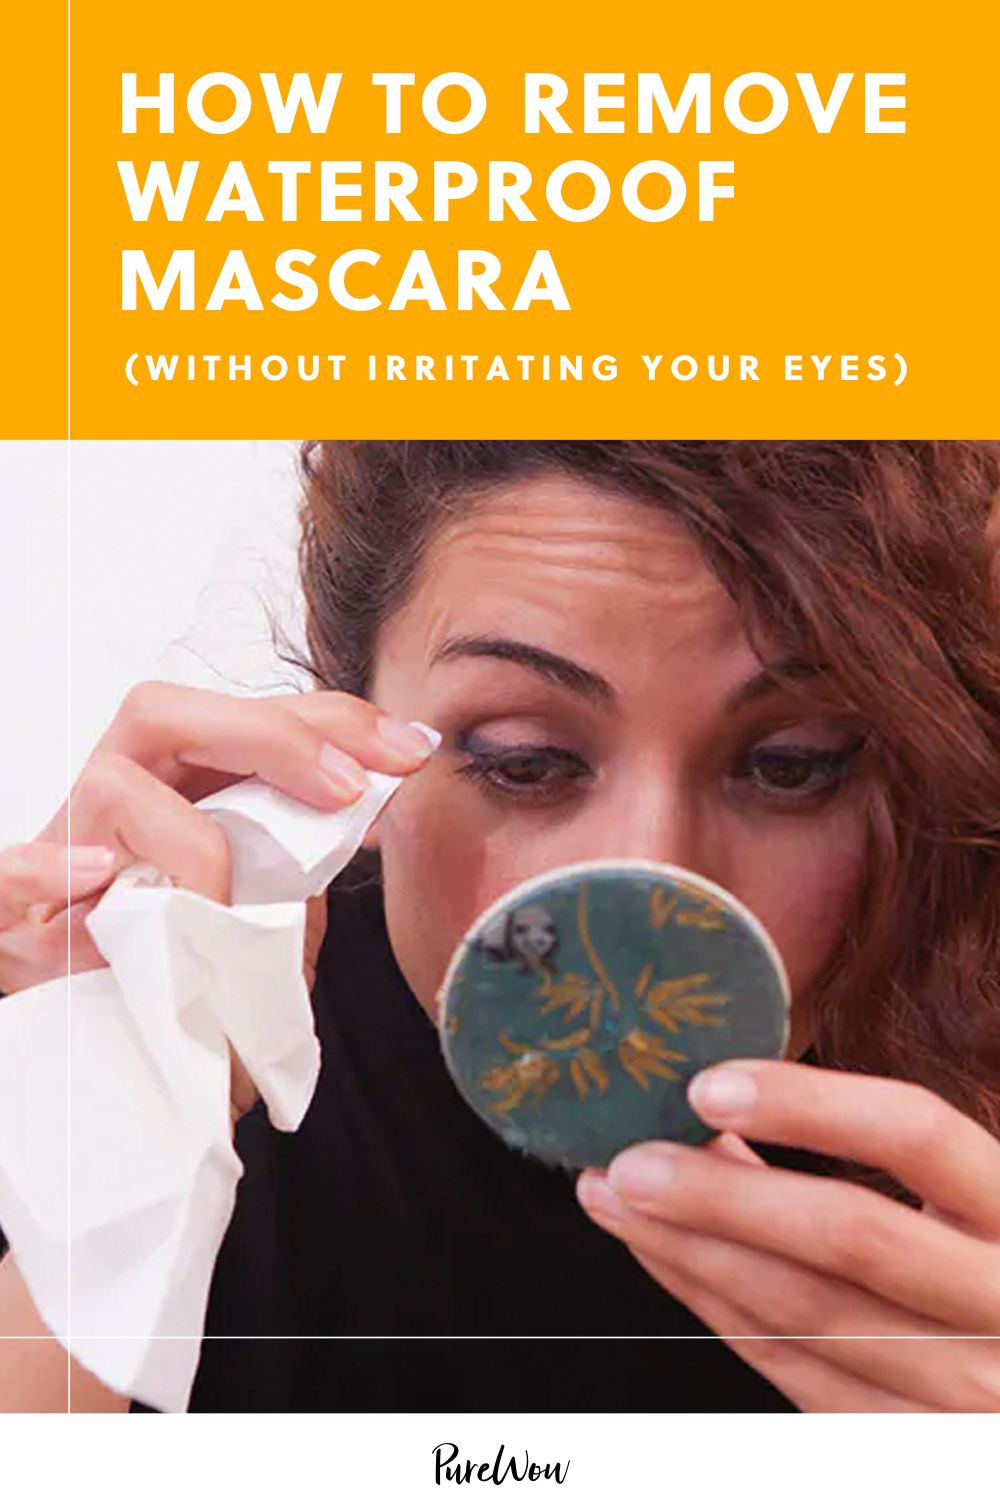 How To Remove Waterproof Mascara Without Irritating Your Eyes In 2020 Waterproof Mascara Remover Waterproof Mascara Best Makeup Remover